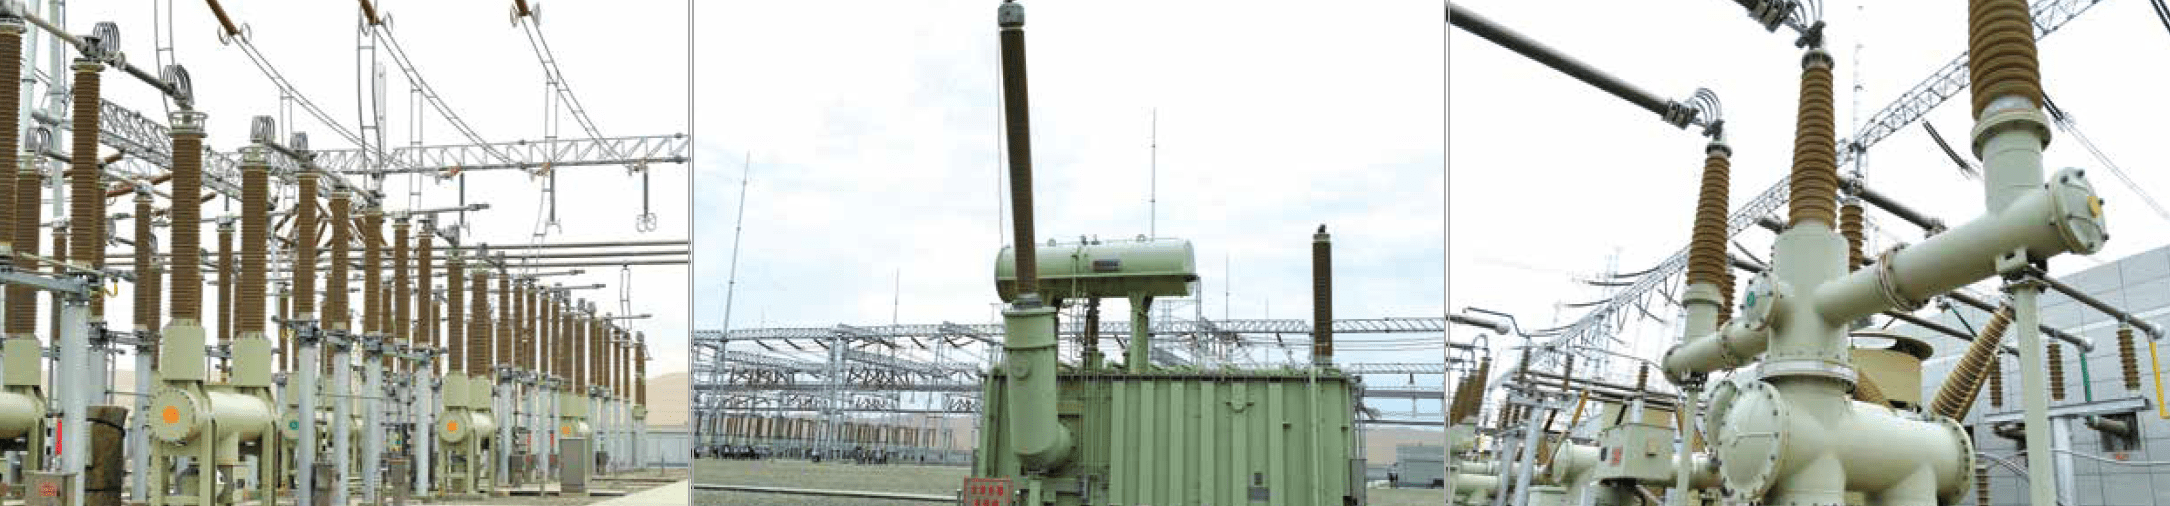 Schematic of transformer bushing used at Shazhou Substation. substation Shazhou Will Serve as China's 'Demonstration' Project for All-Composite-Insulated Substation Screen Shot 2016 07 20 at 15